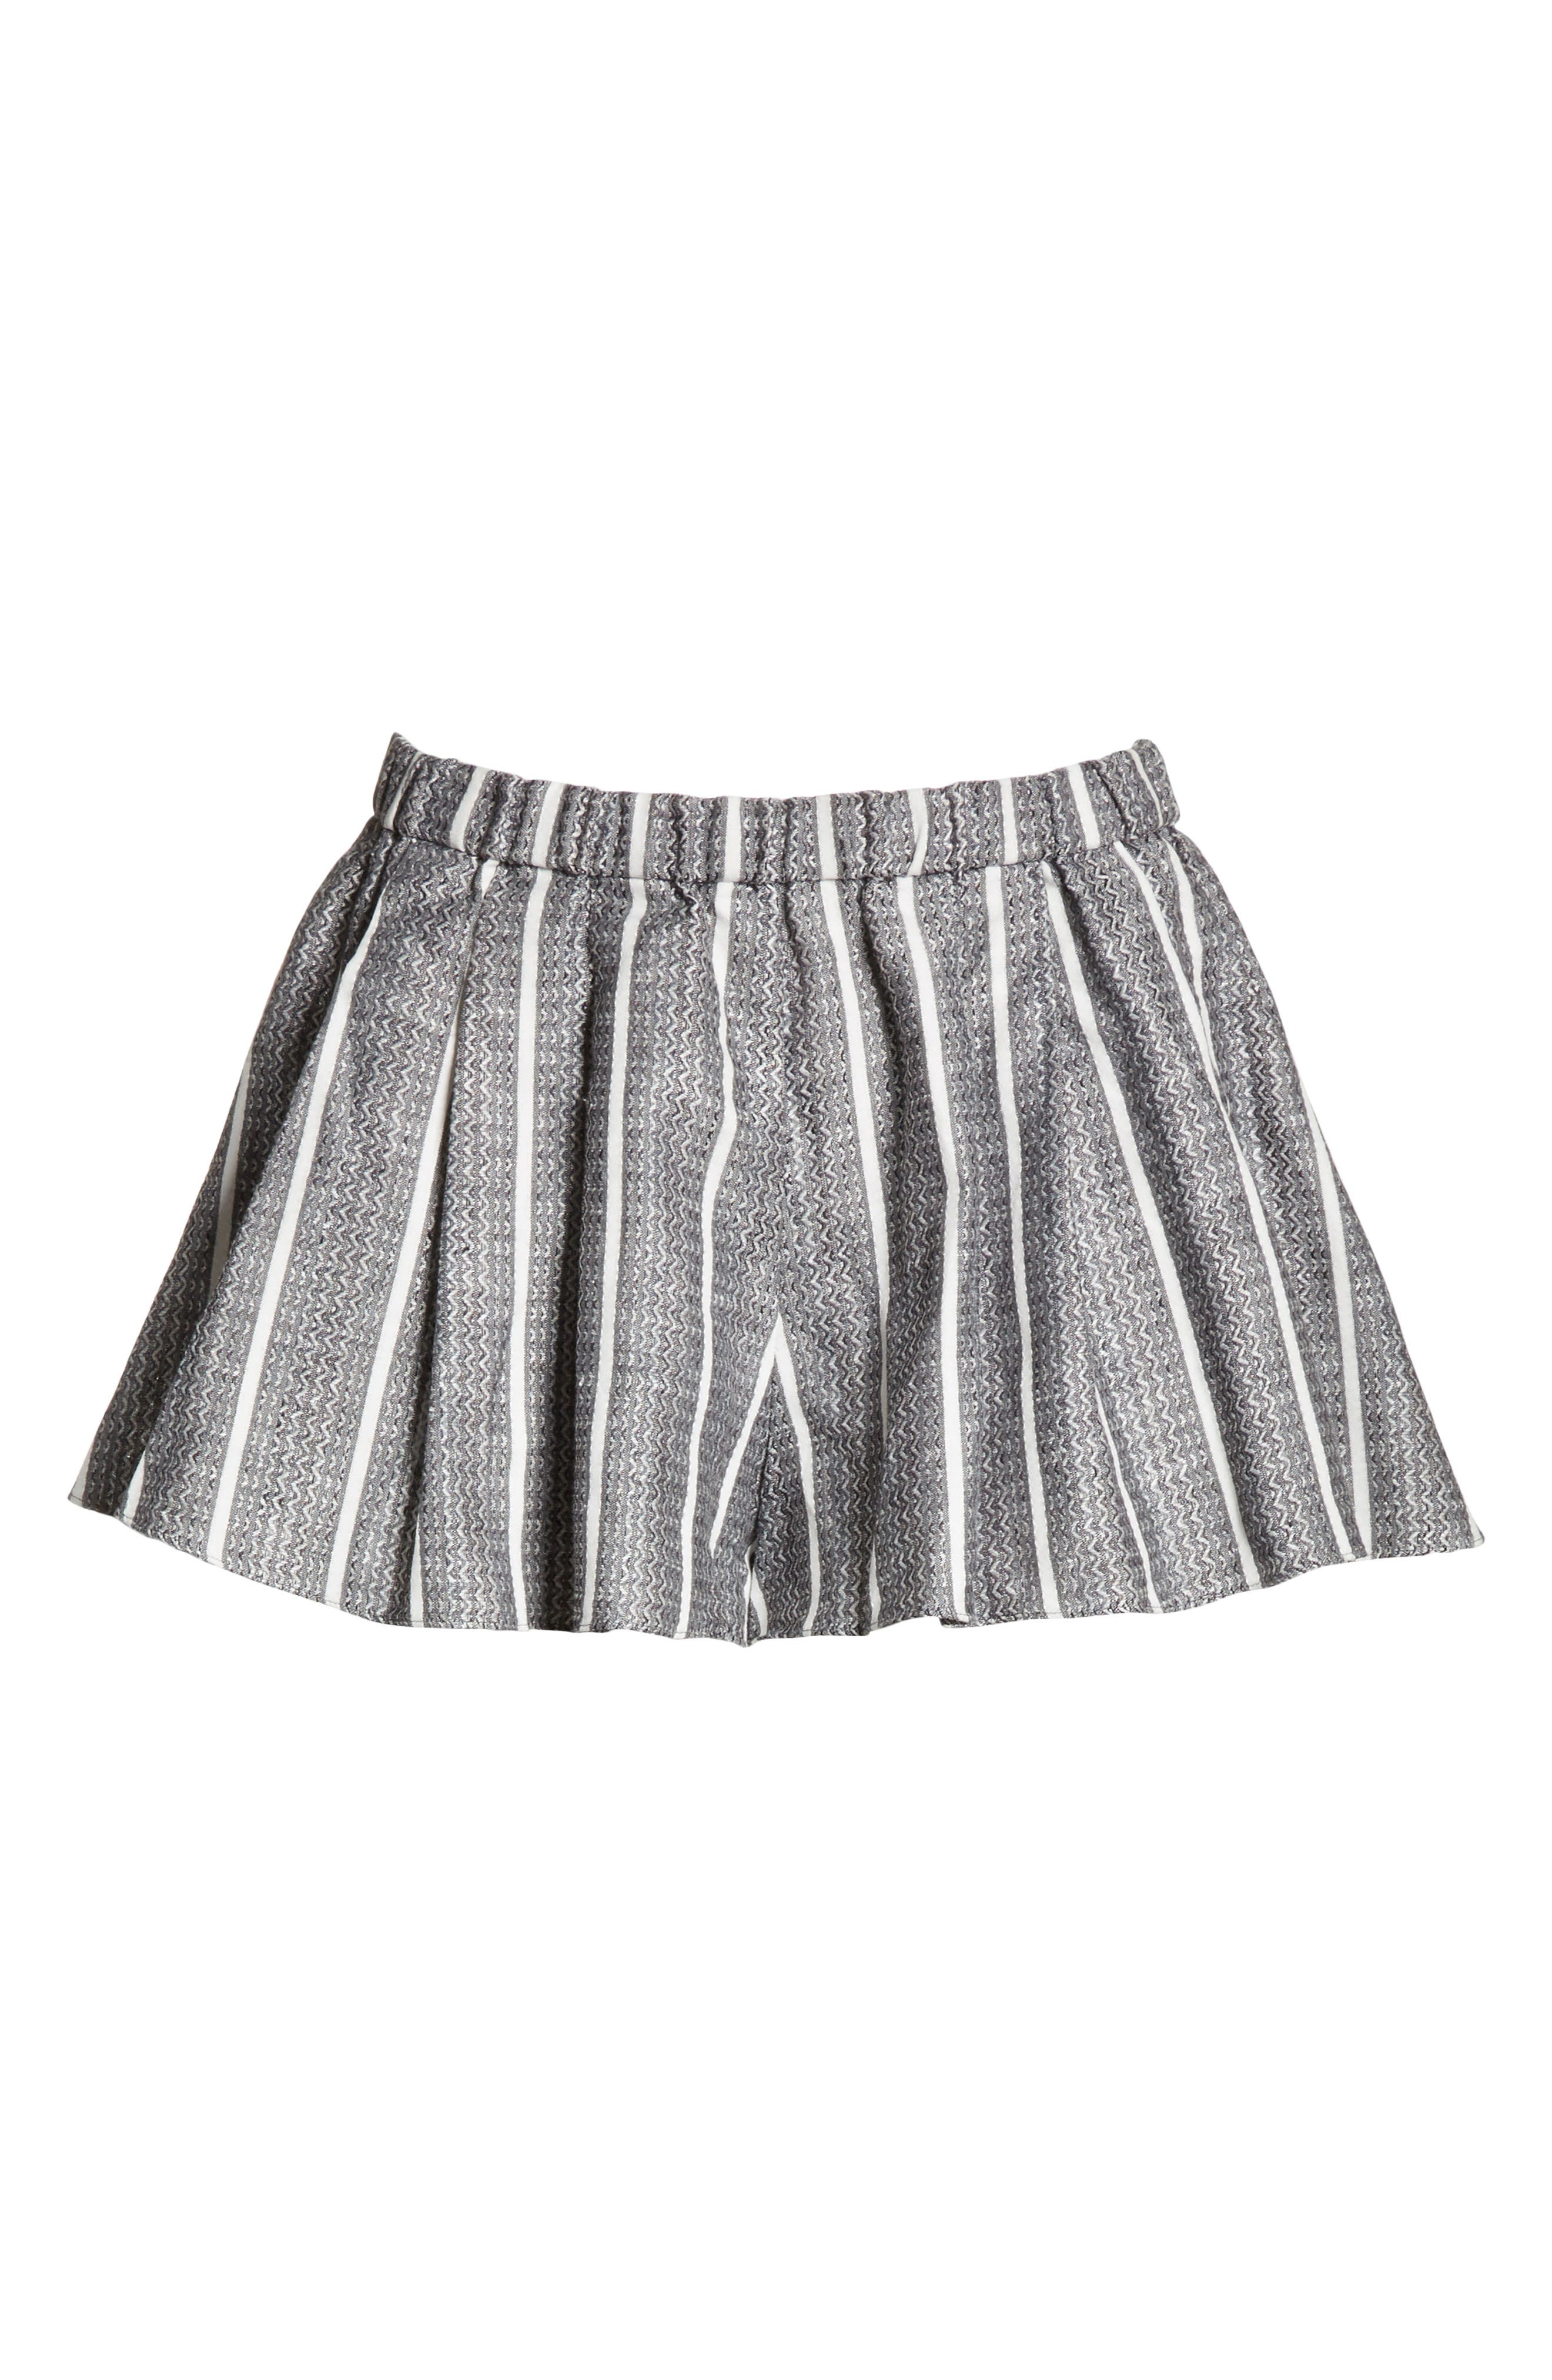 Pleated Shorts,                             Alternate thumbnail 6, color,                             001